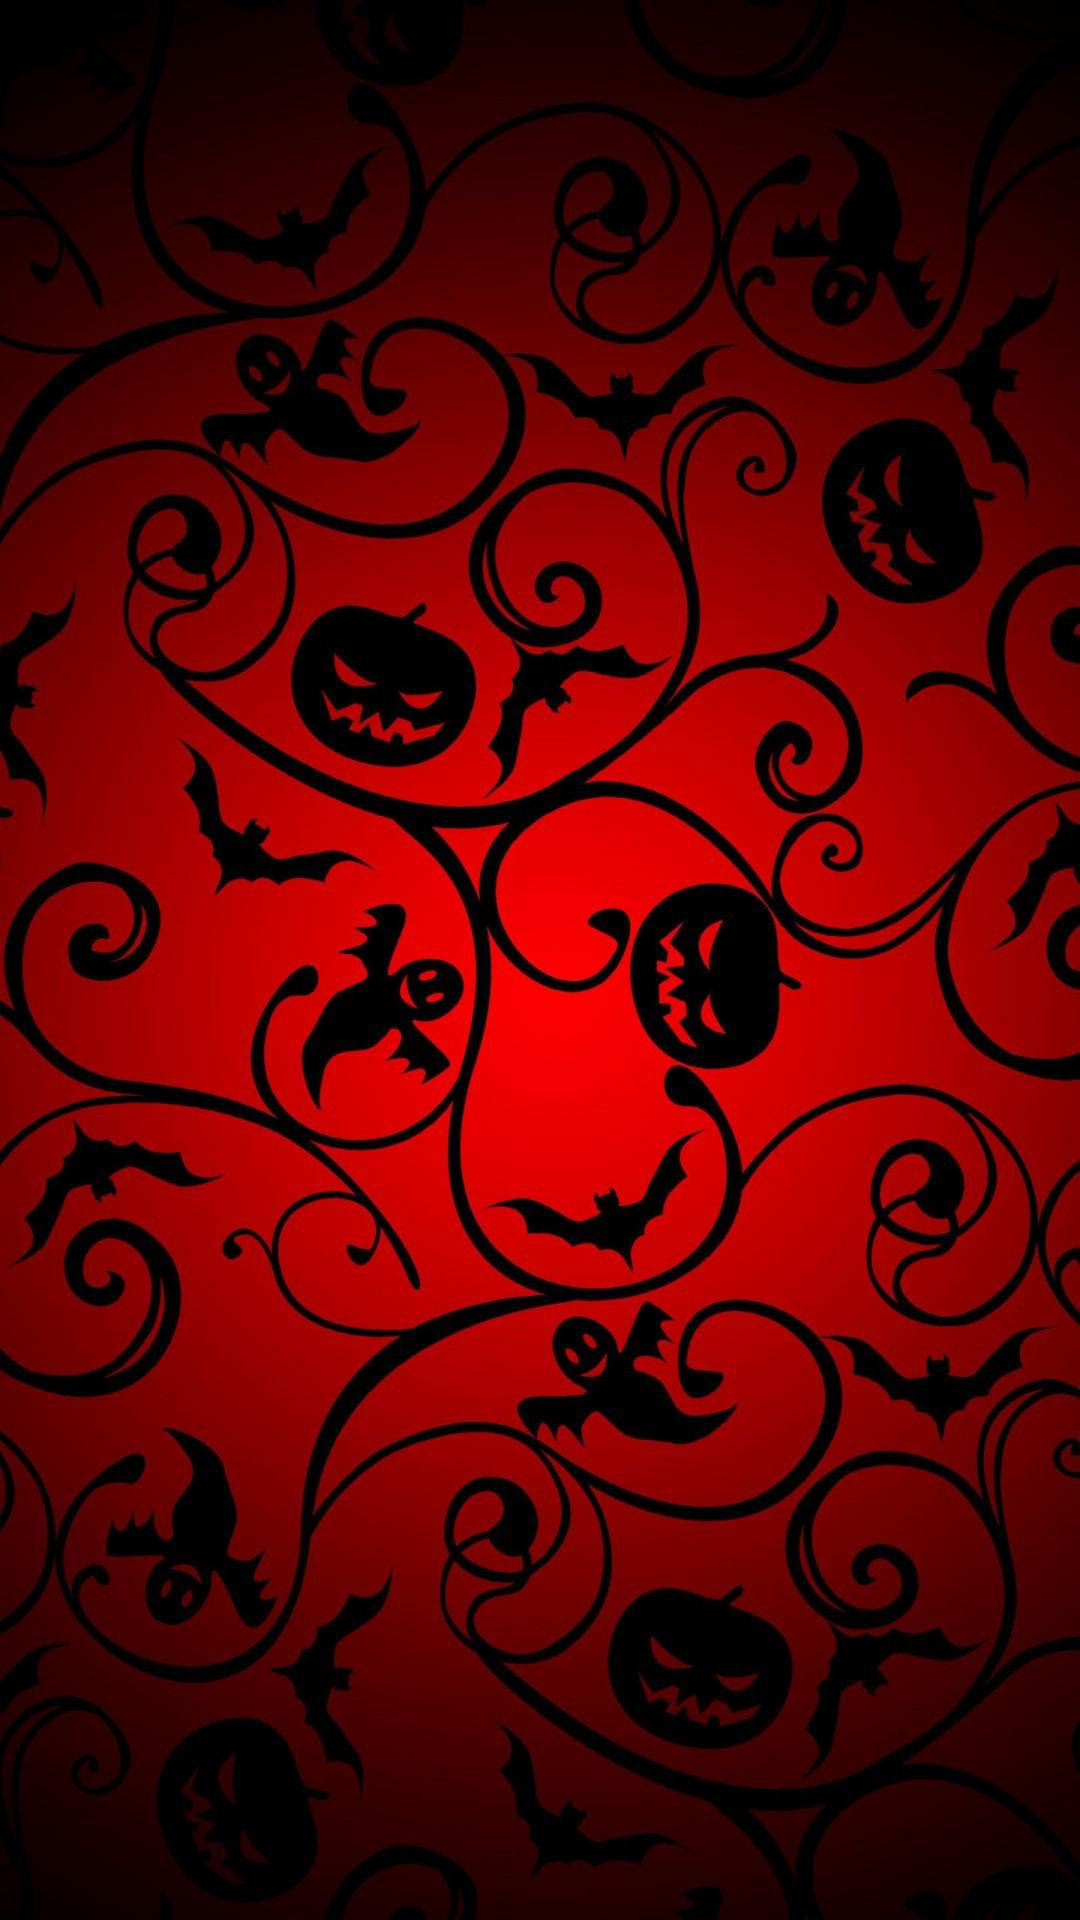 Free Halloween Wallpaper Hd Download For Iphone